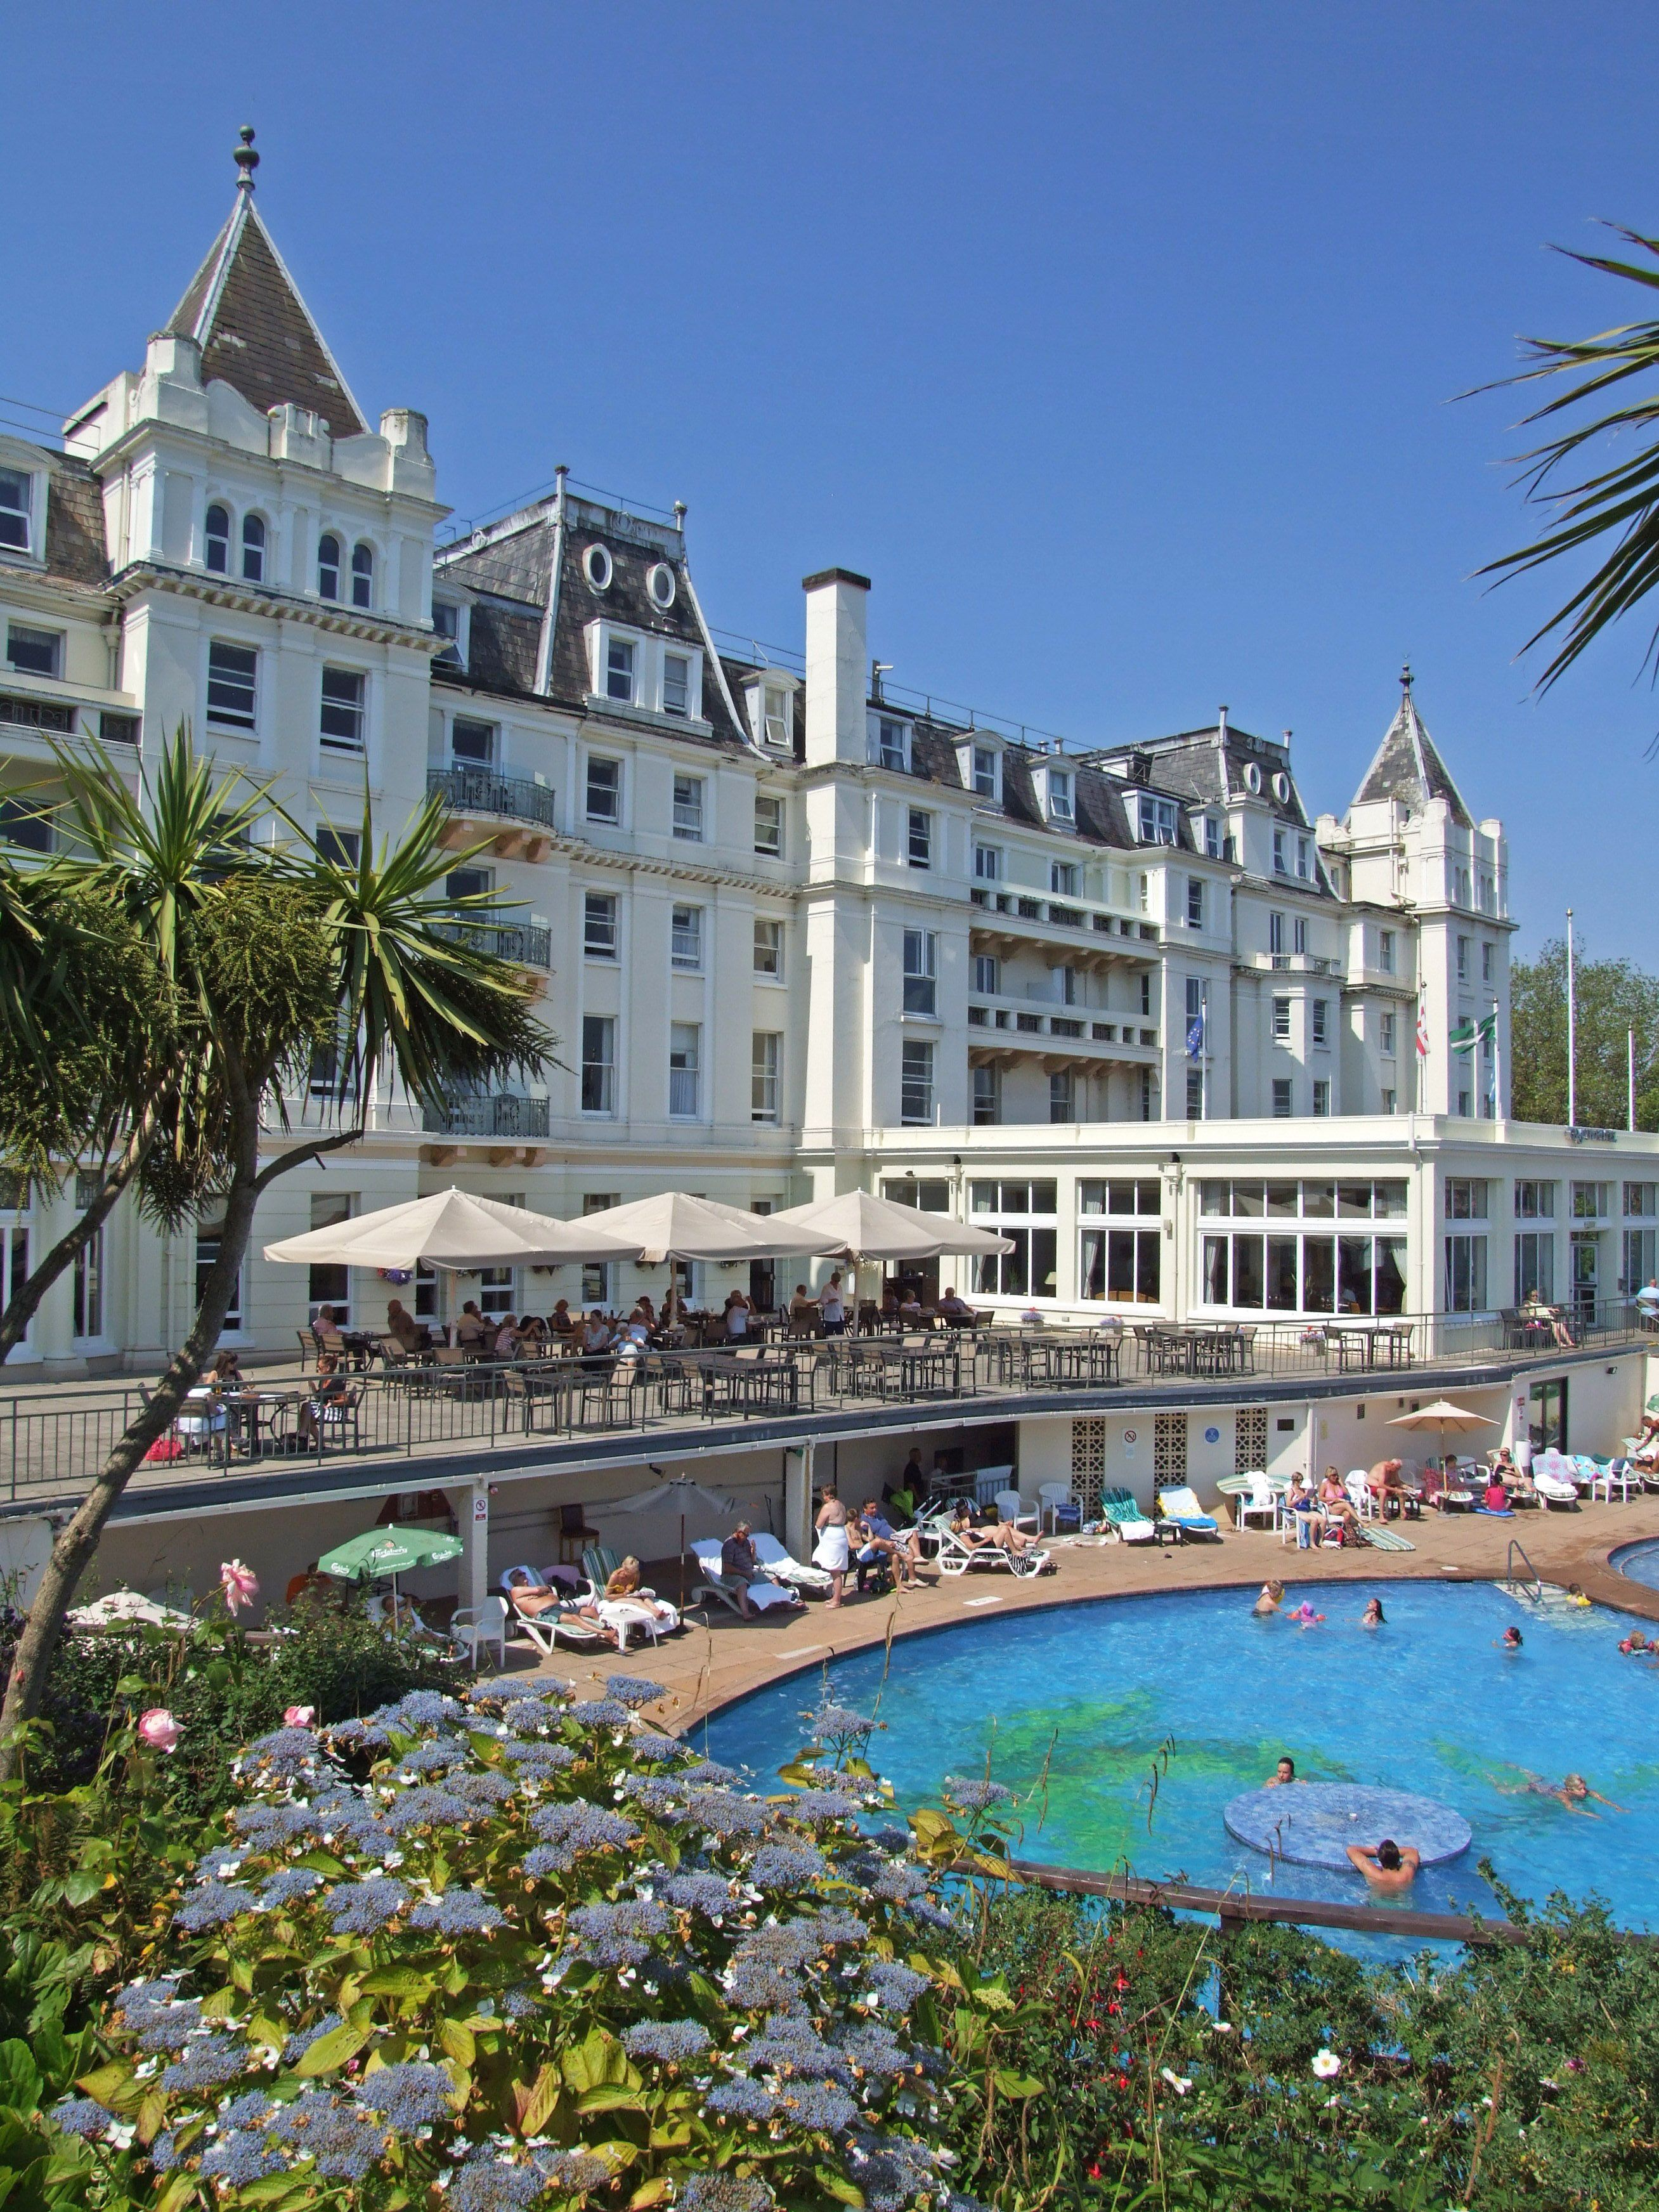 The Grand Hotel In Torquay Outdoor Heated Swimming Pool Have A